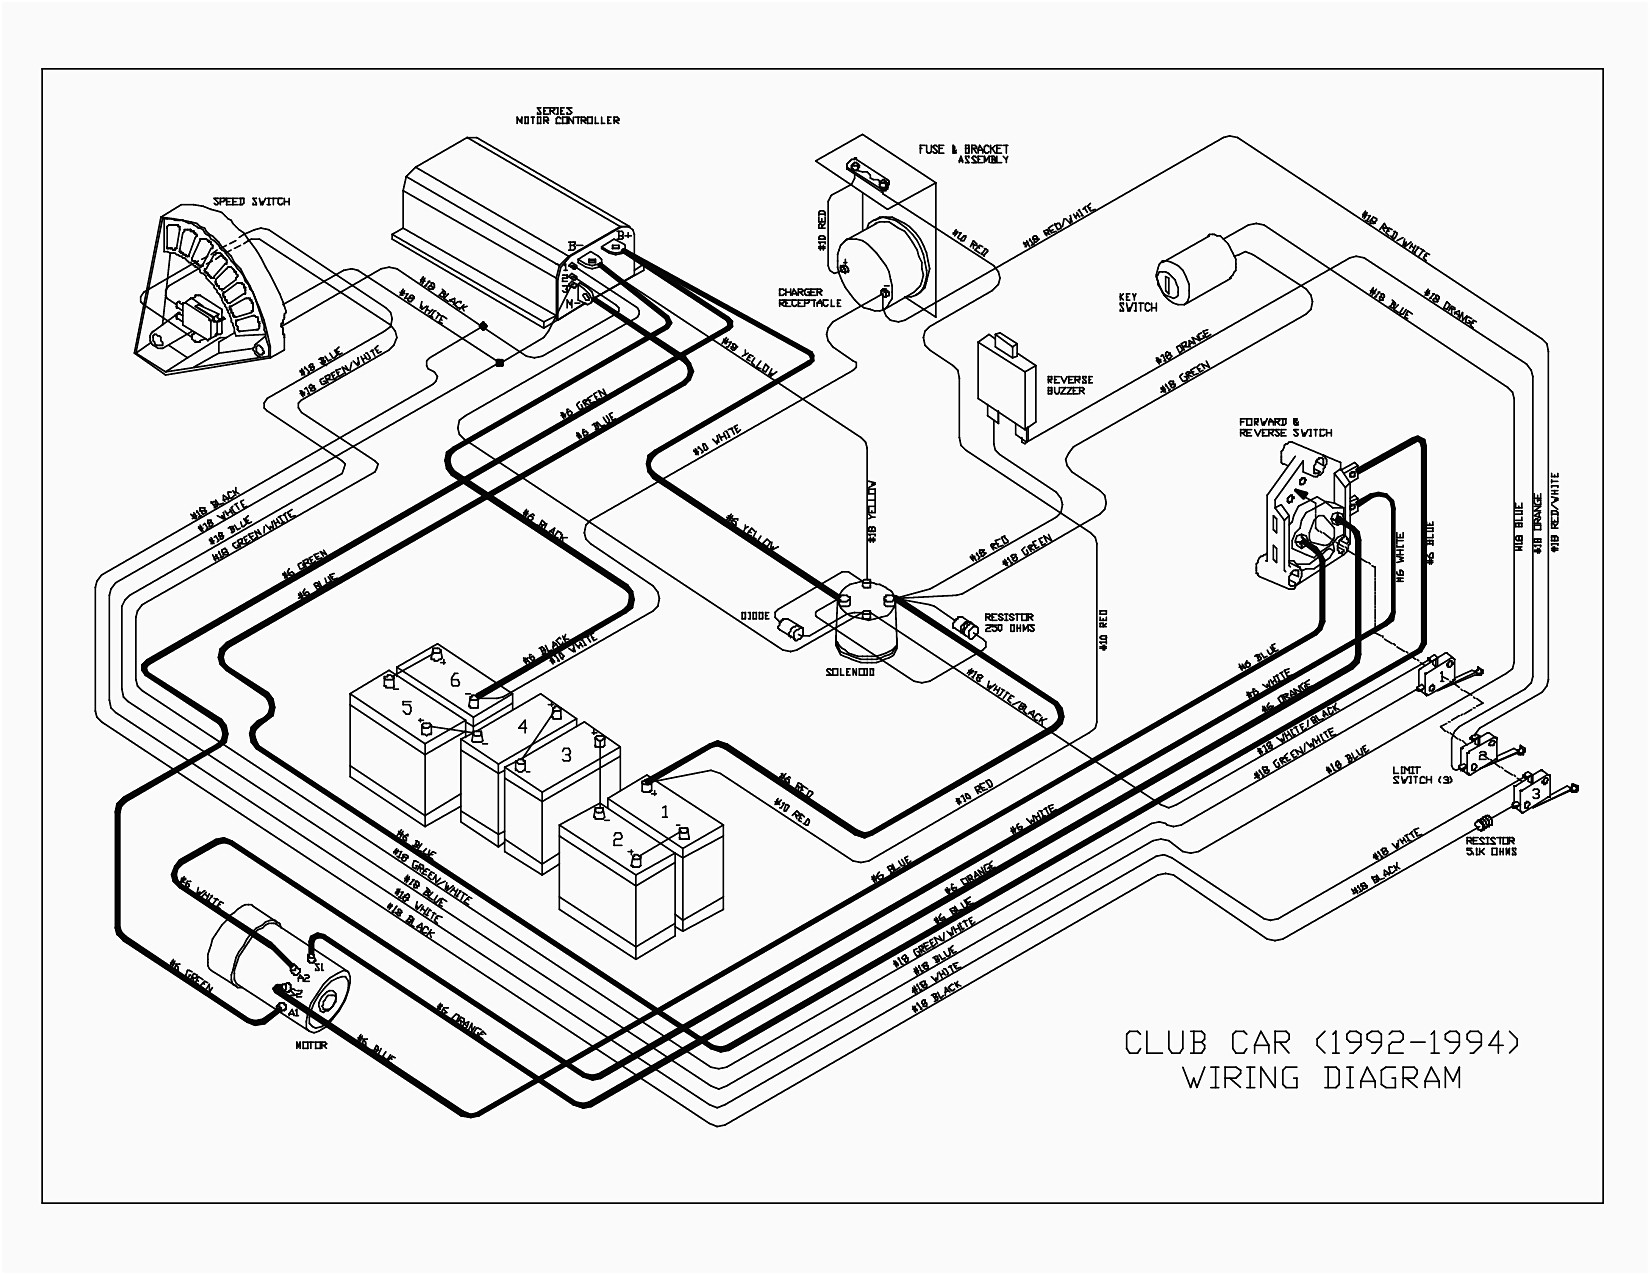 Parts manual for club car golf cart ingersoll rand club car wiring diagram in luxury parts